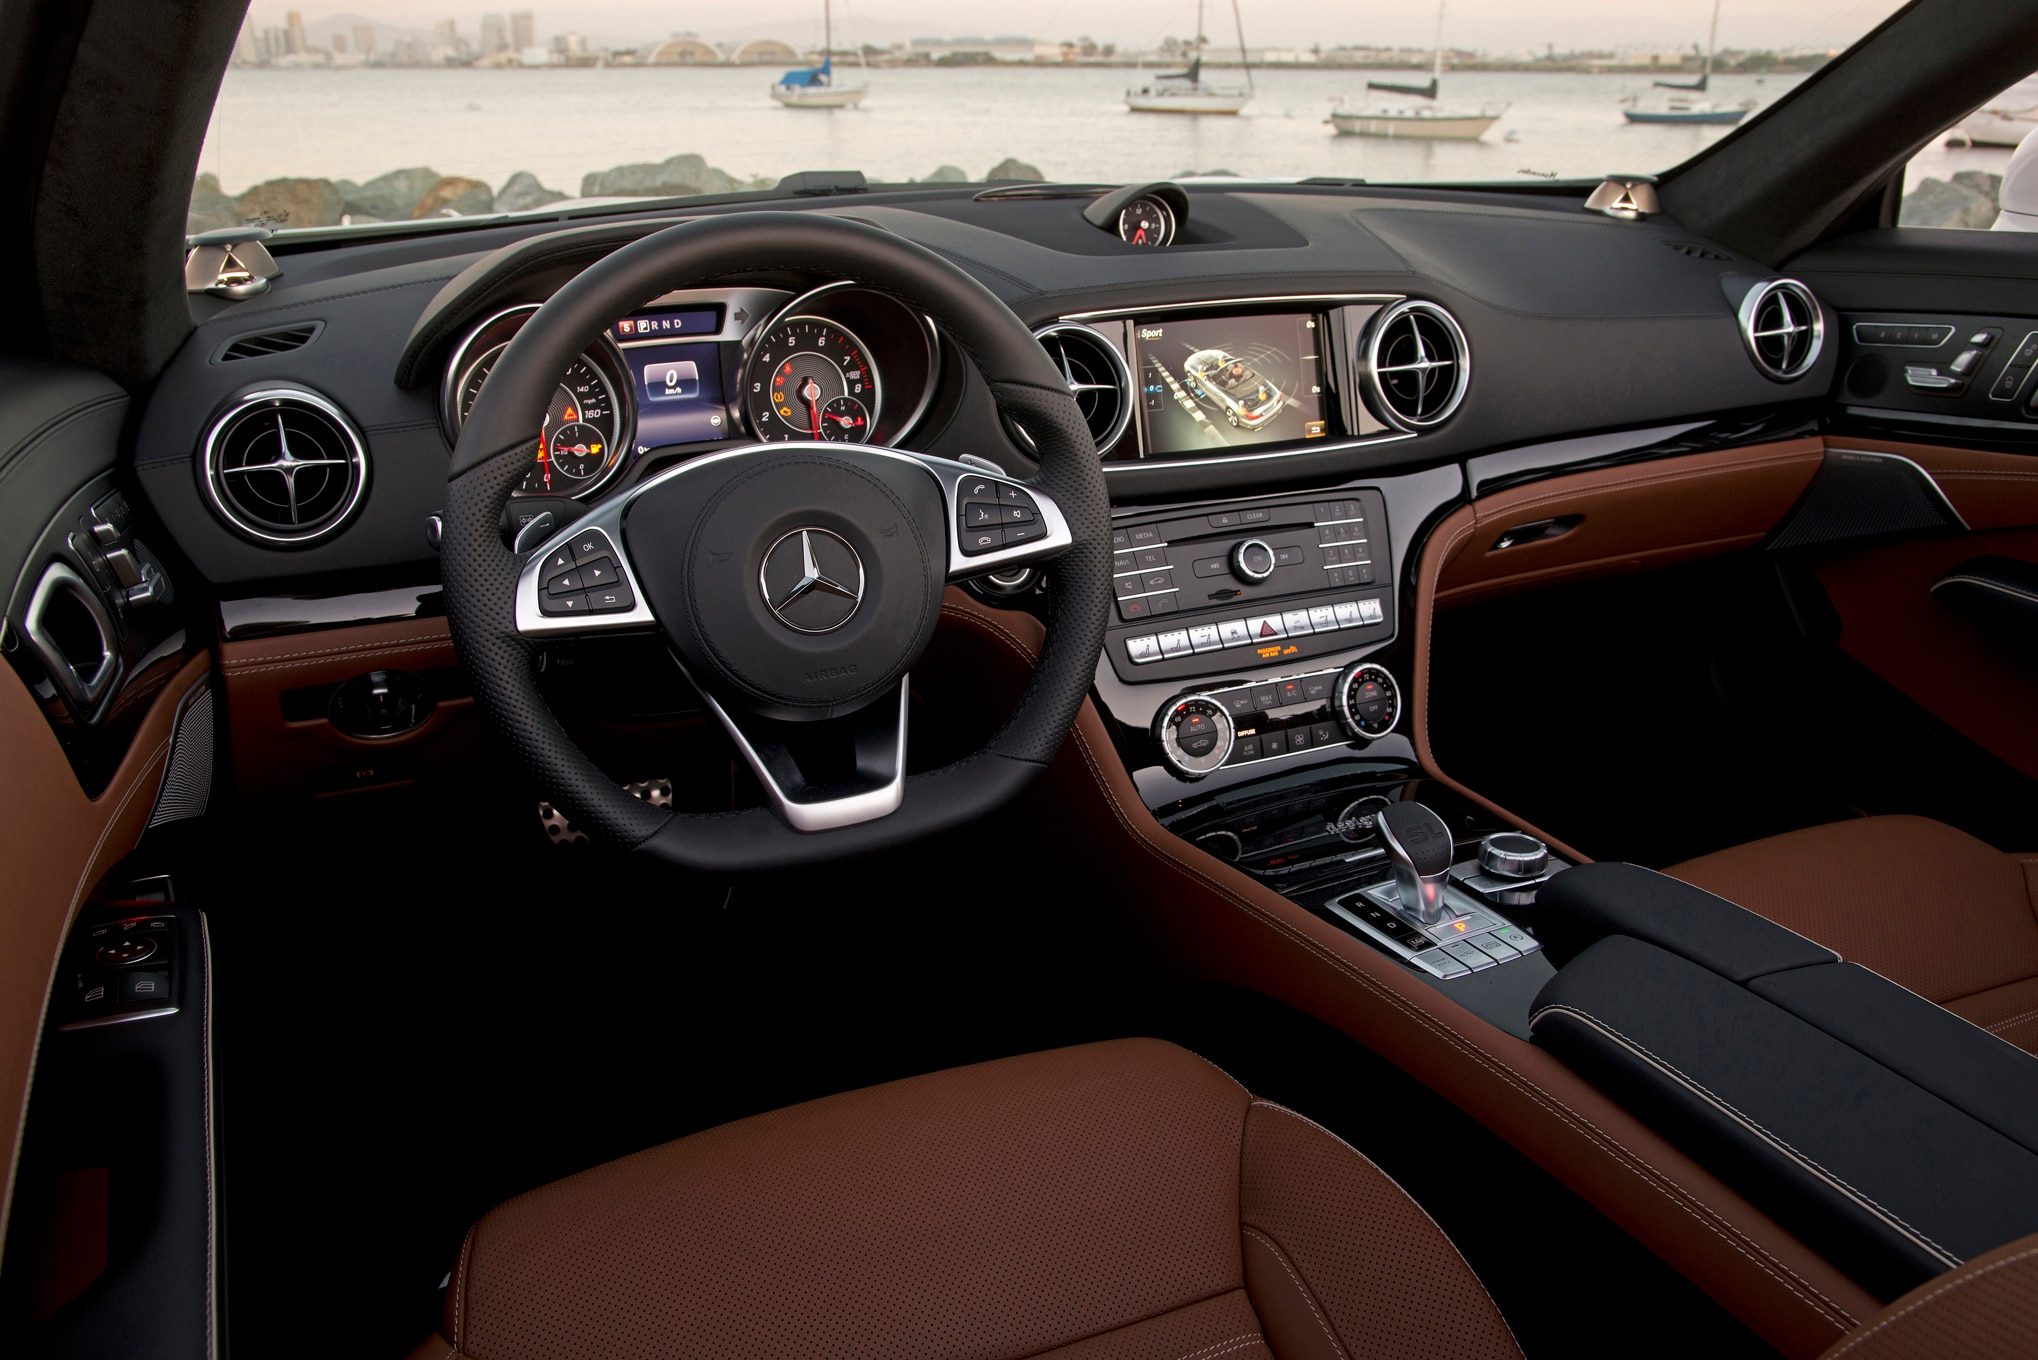 Mercedes sls interior 2017 my site for Mercedes benz inside view